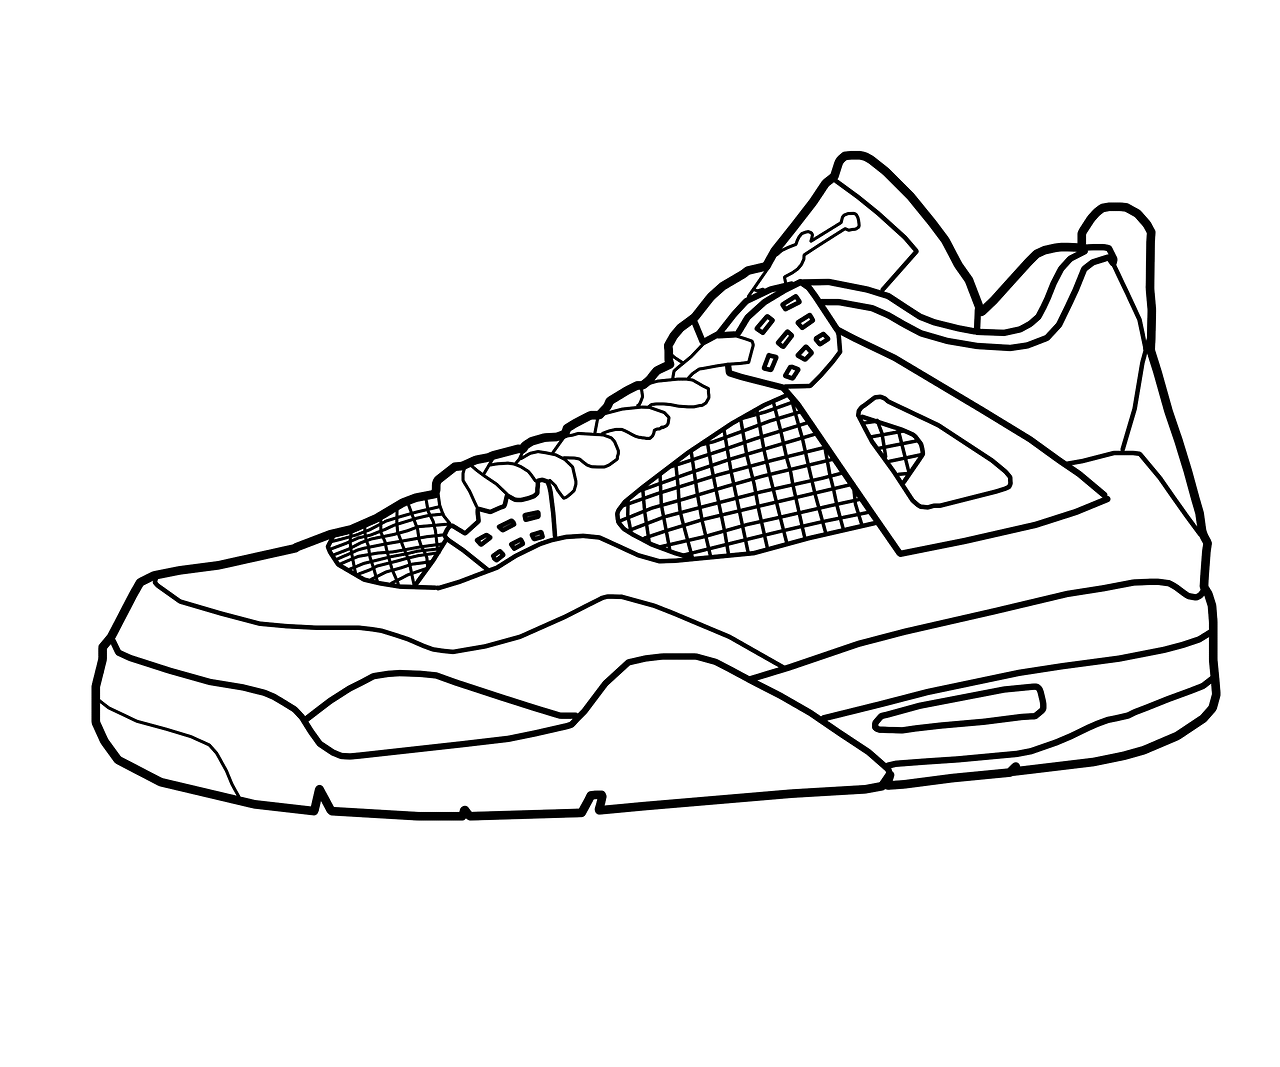 images of shoes to color running shoes drawing at getdrawings free download to shoes color images of